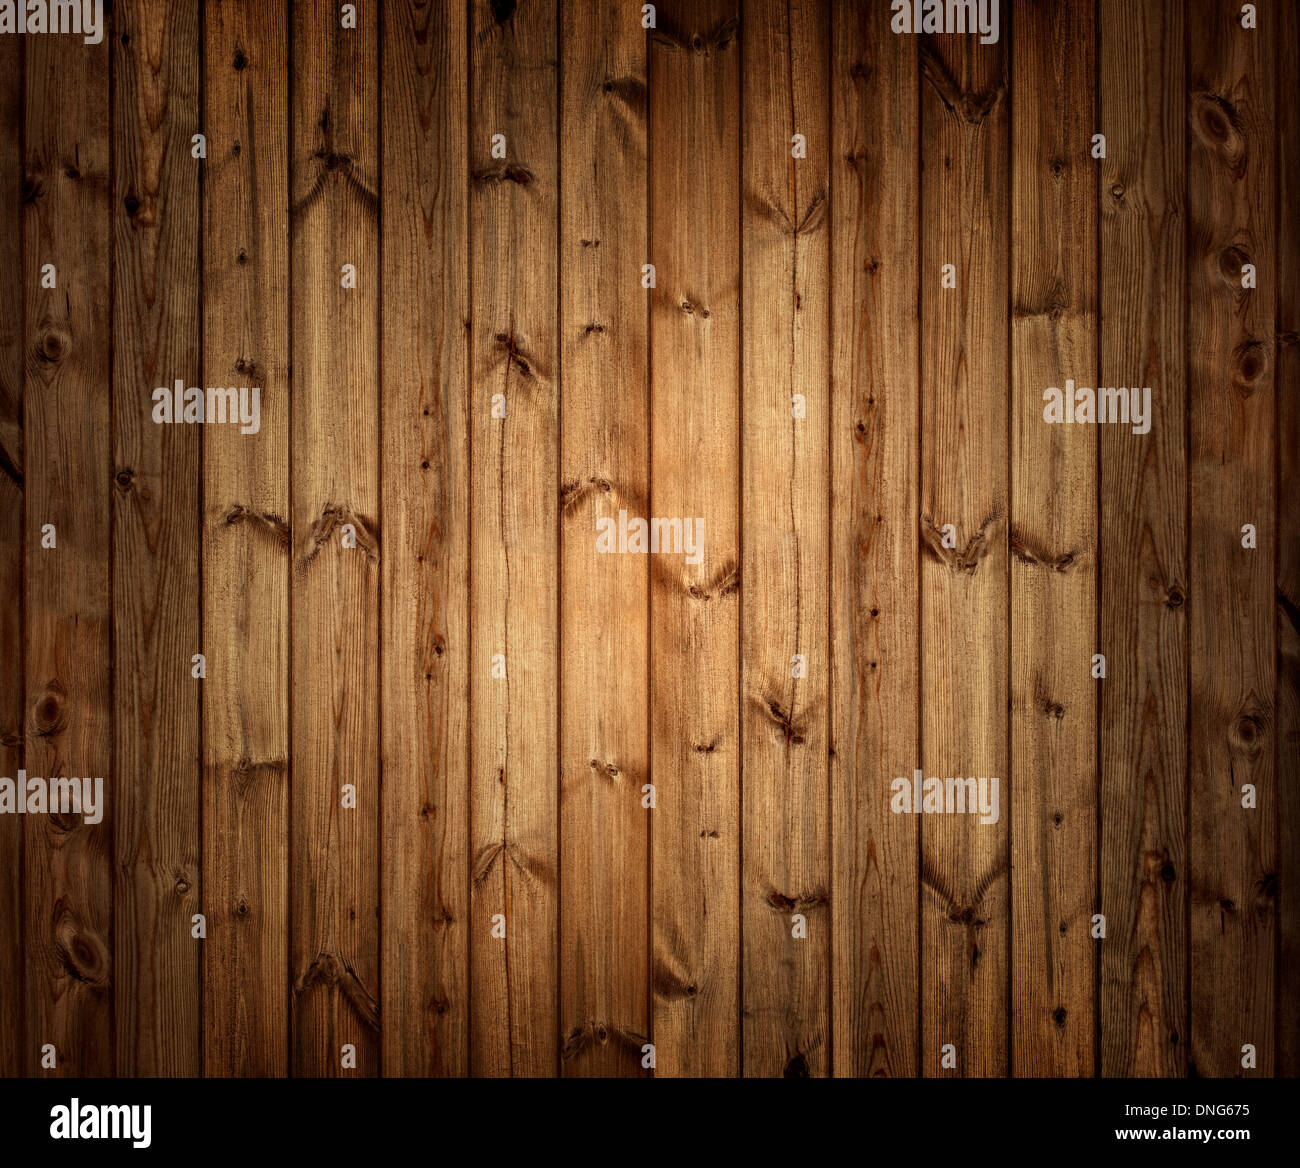 Old wood plank background - Stock Image